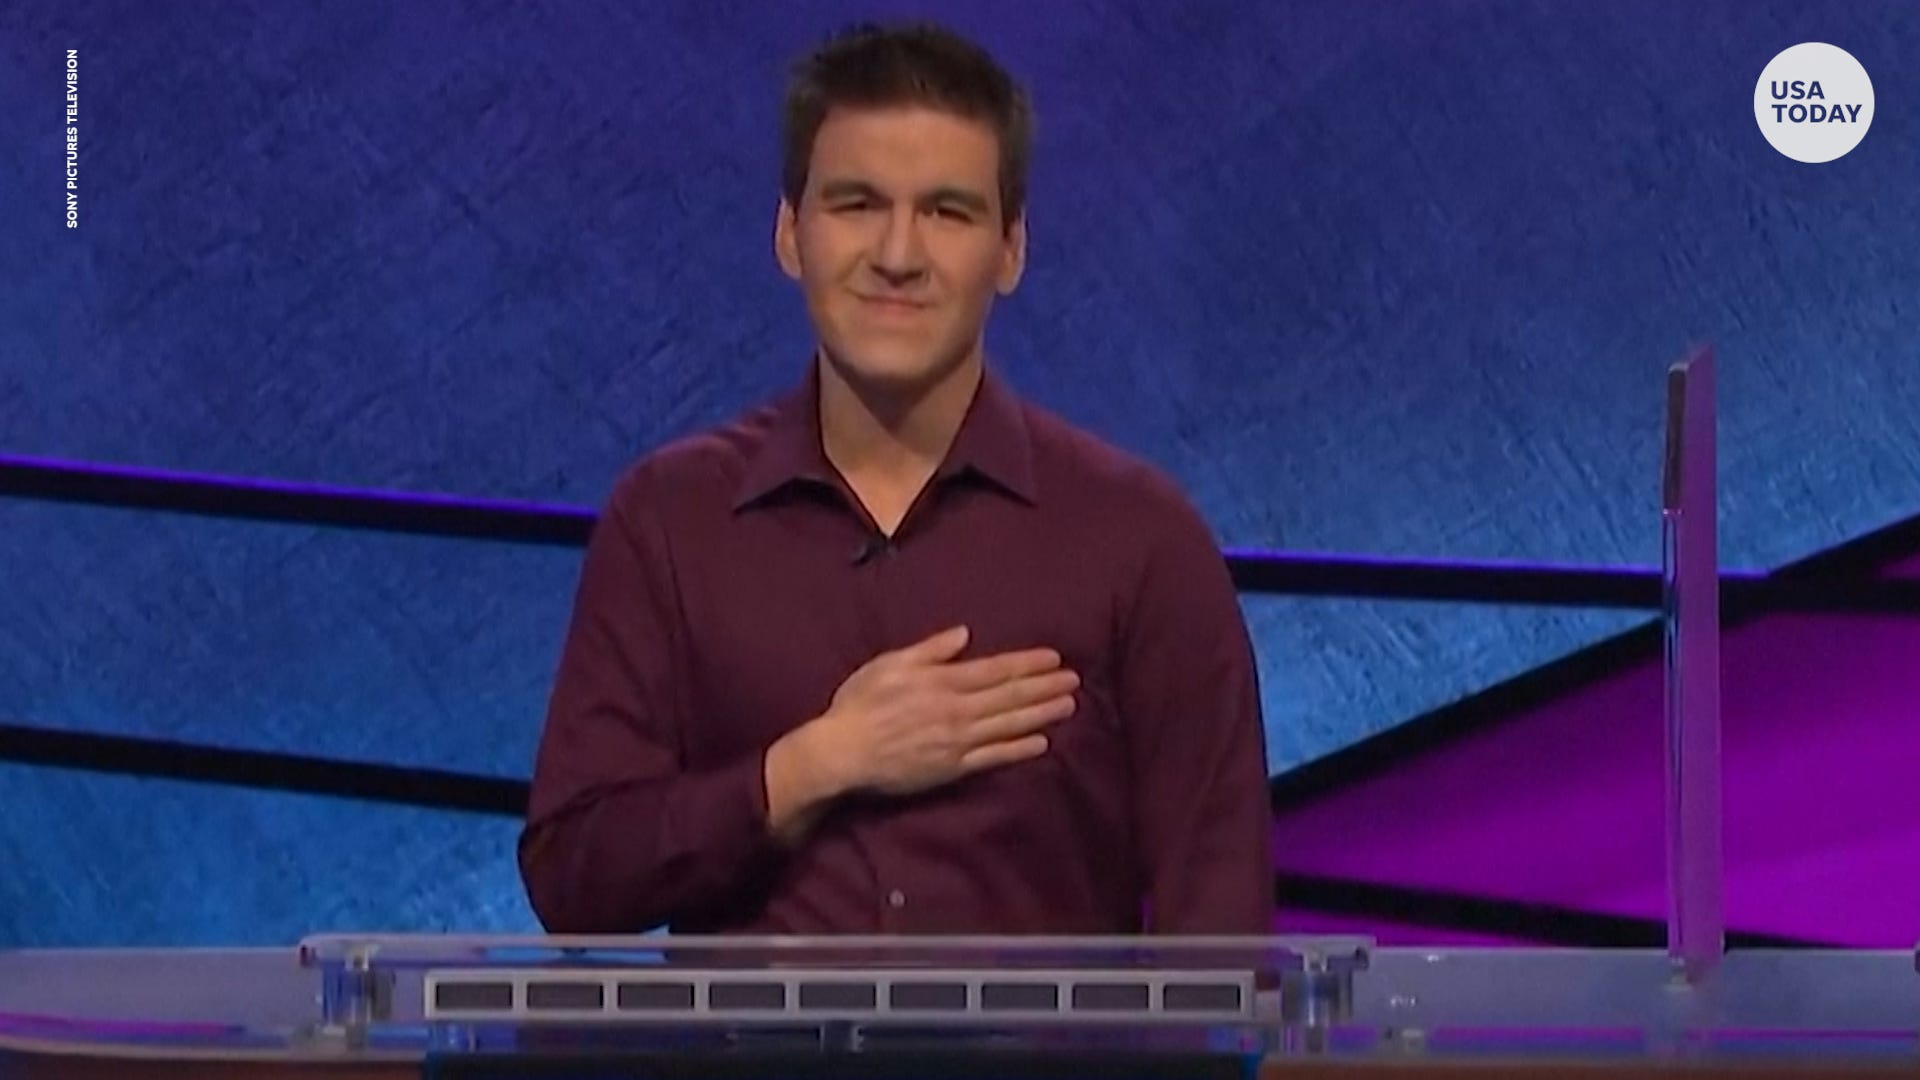 'Jeopardy!' contestant James Holzhauer breaks his own record